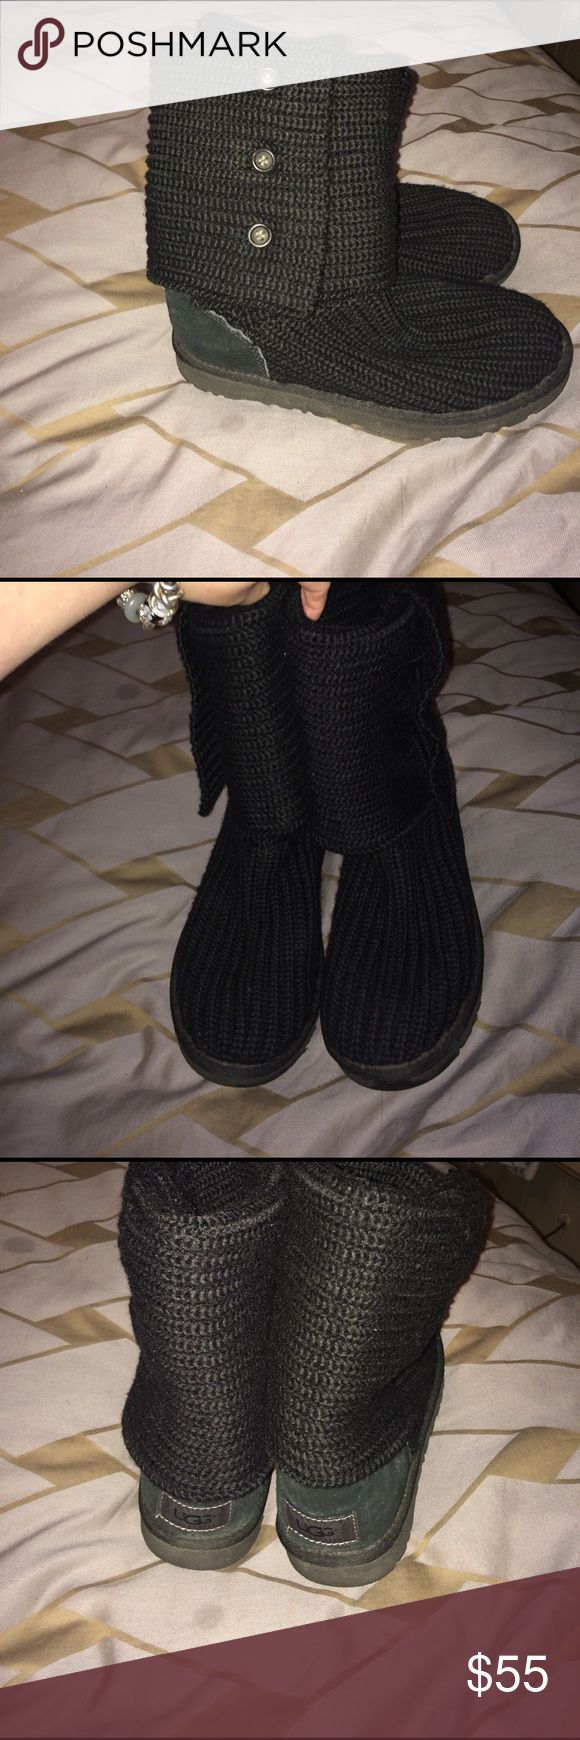 Ugg Australia classic cardy knit boot black size 7 Being offered is a very gently worn pair of authentic ugg Australia black foldover knit classic cardy boots in size 7. Smoke free home I do bundle and take reasonable offers no trades except maybe perfume LOL! UGG Shoes Winter & Rain Boots